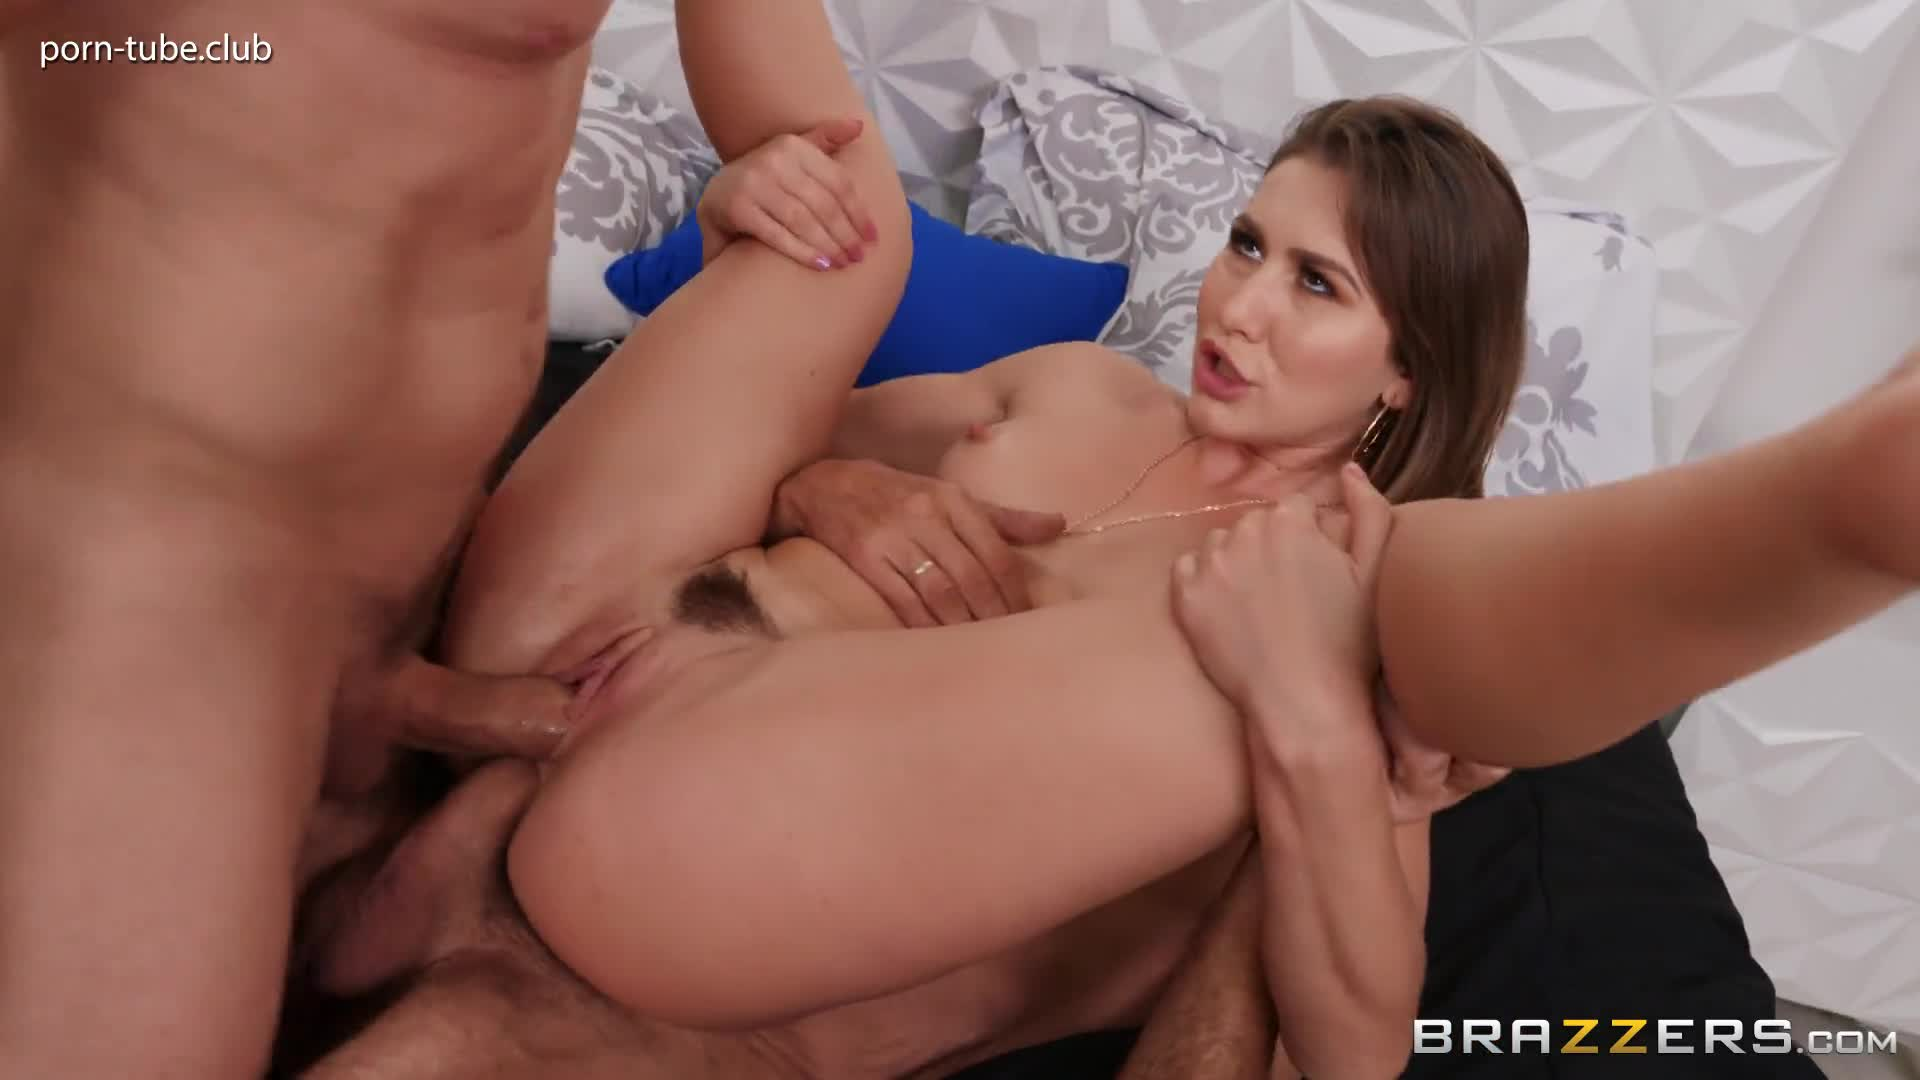 BrazzersExxtra 20.01.12 Paige Owens Trading Up Times Two